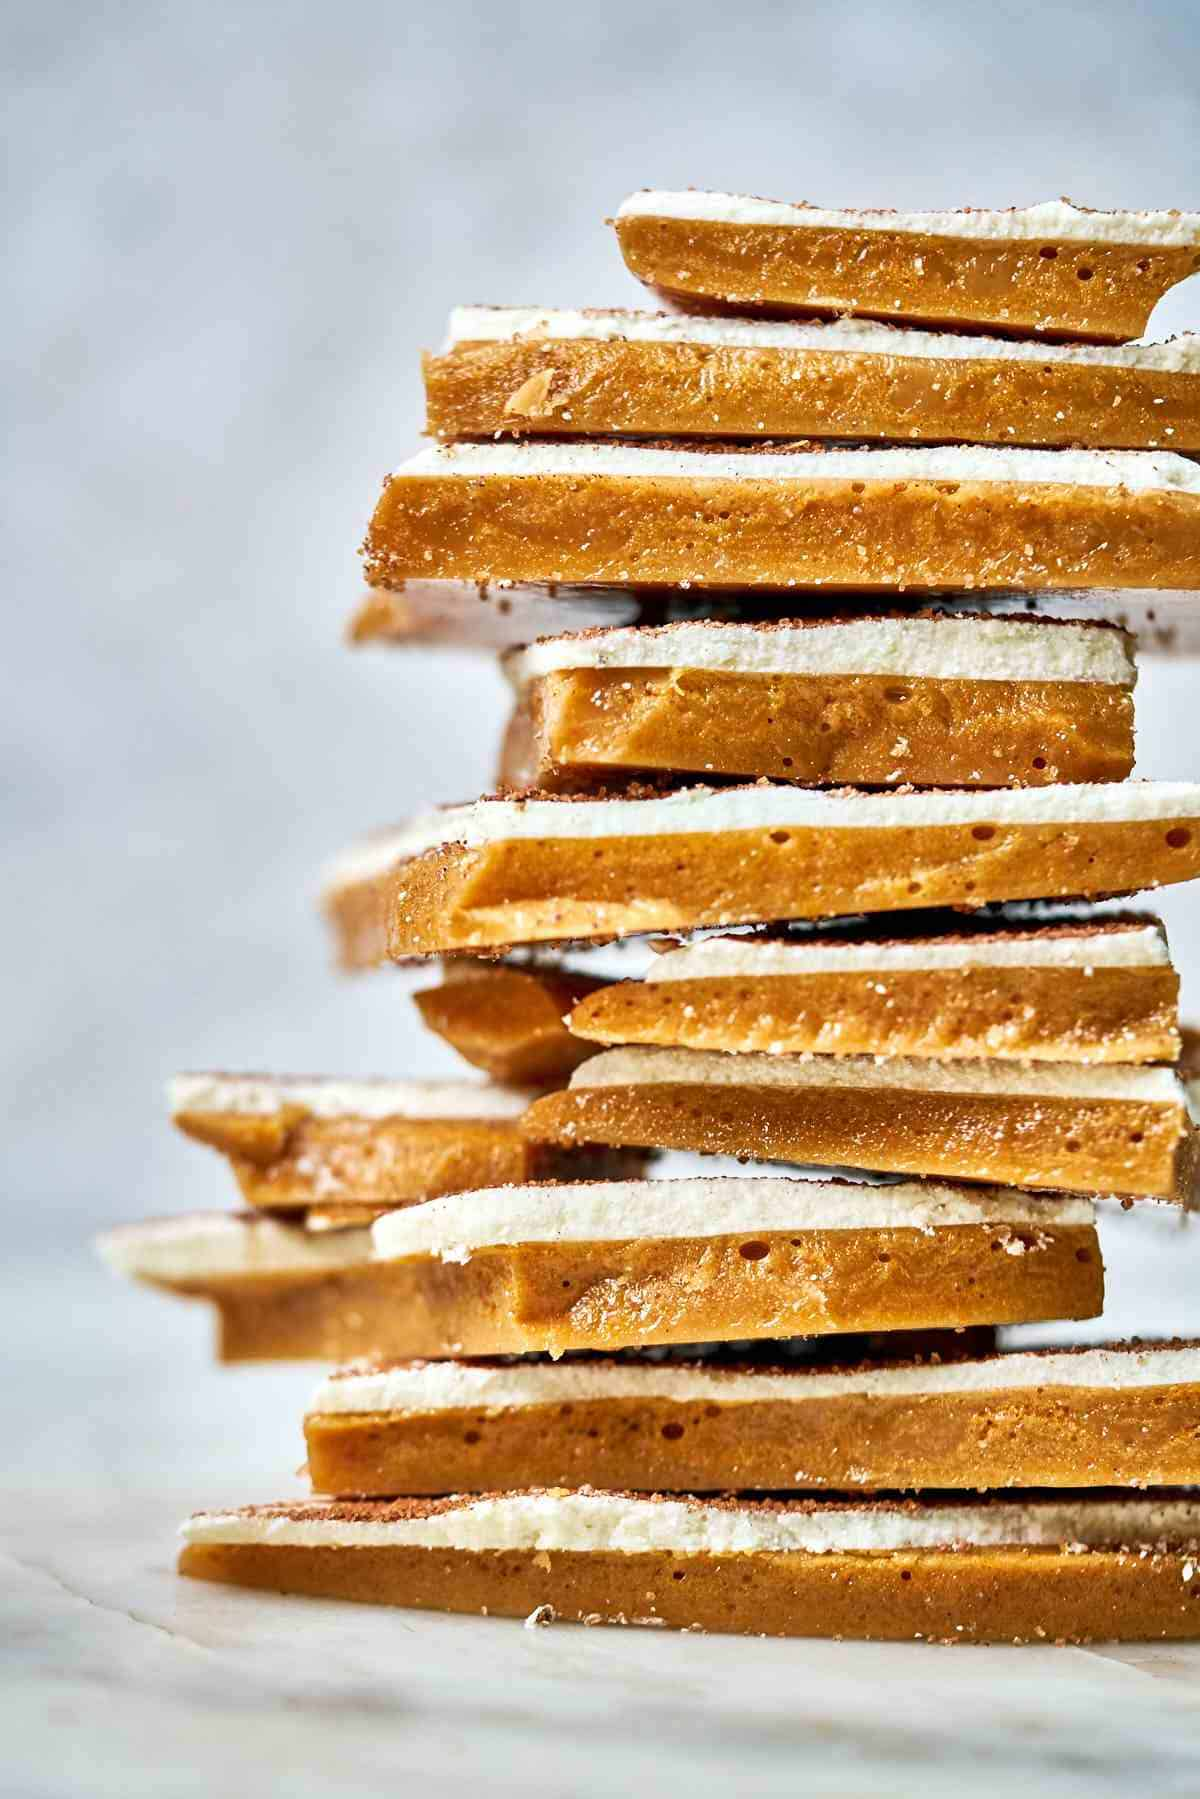 Stack of toffee with white chocolate and a white background.